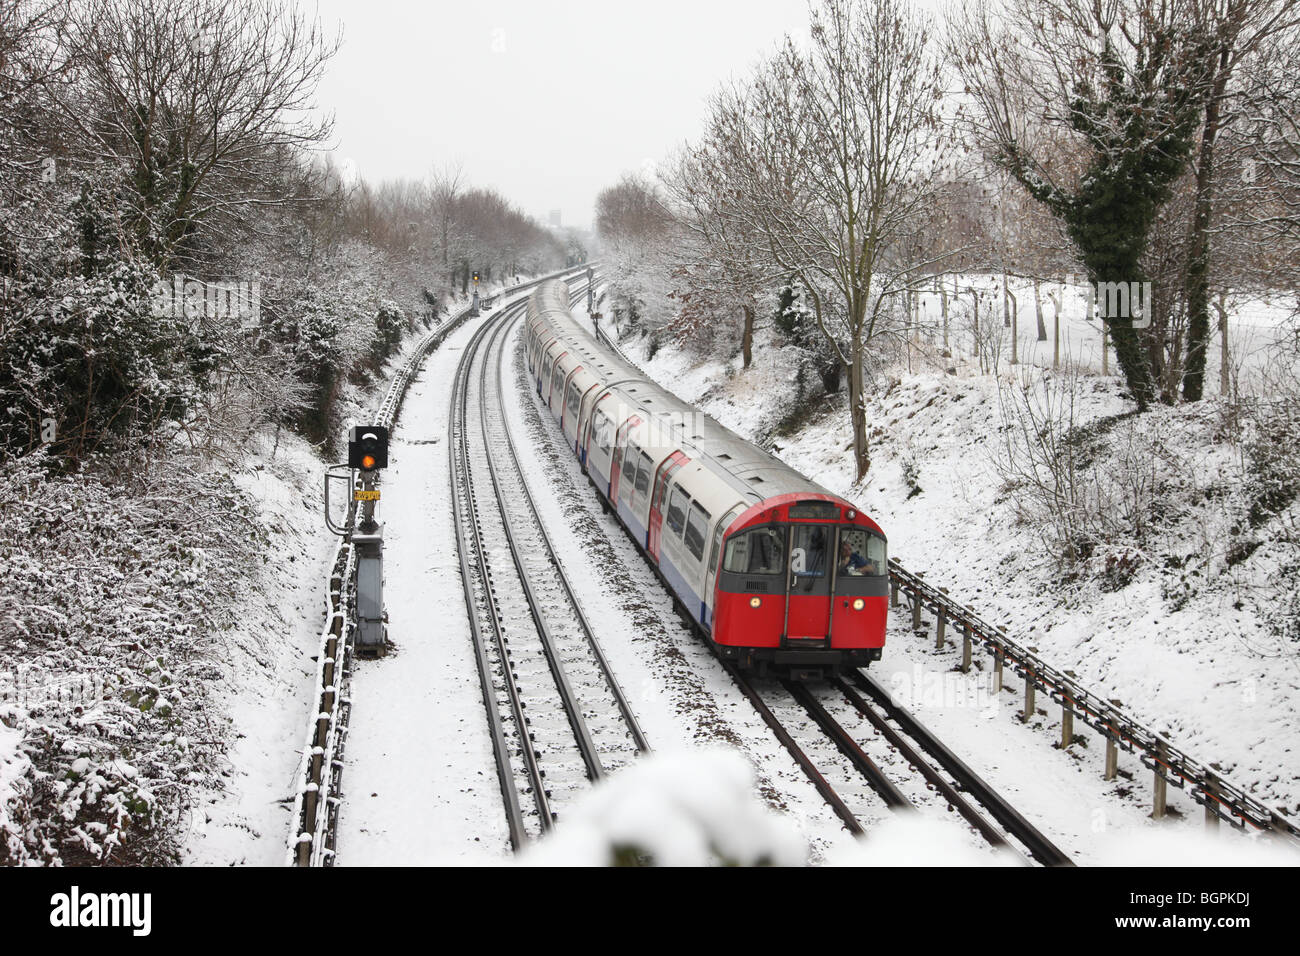 London Underground Tube train in snow covered scene - Stock Image